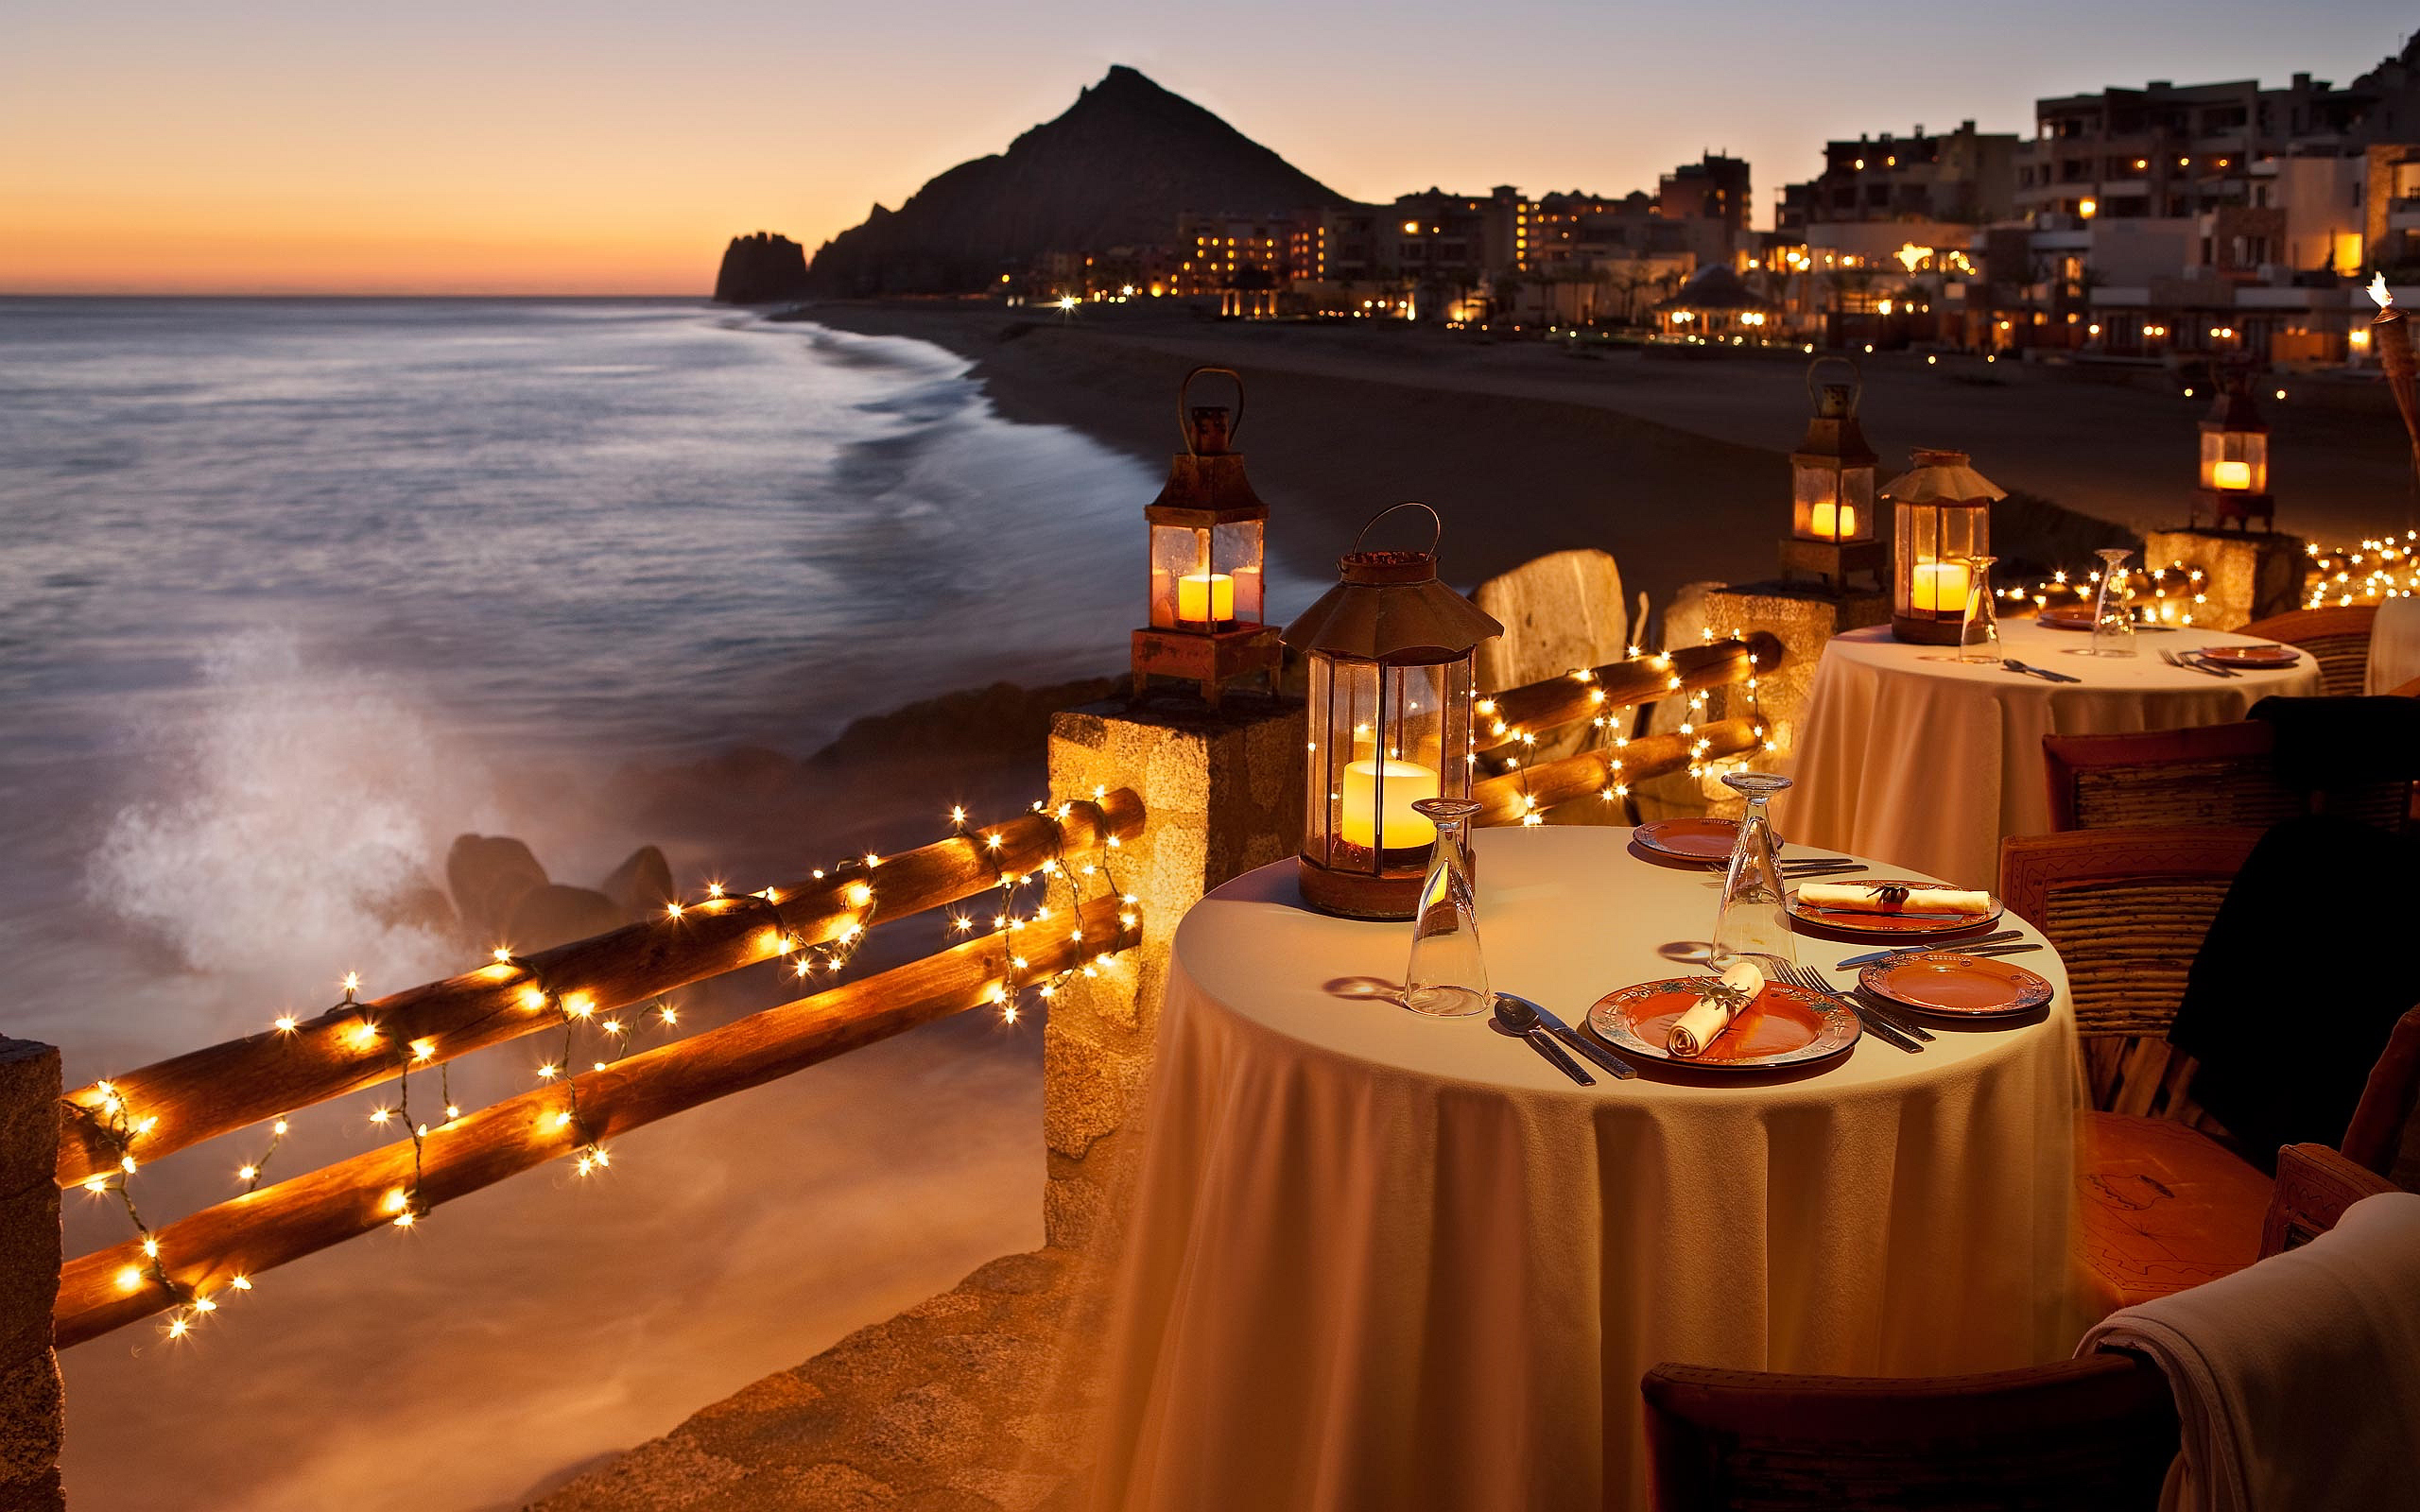 Beach Candlelight Dinner